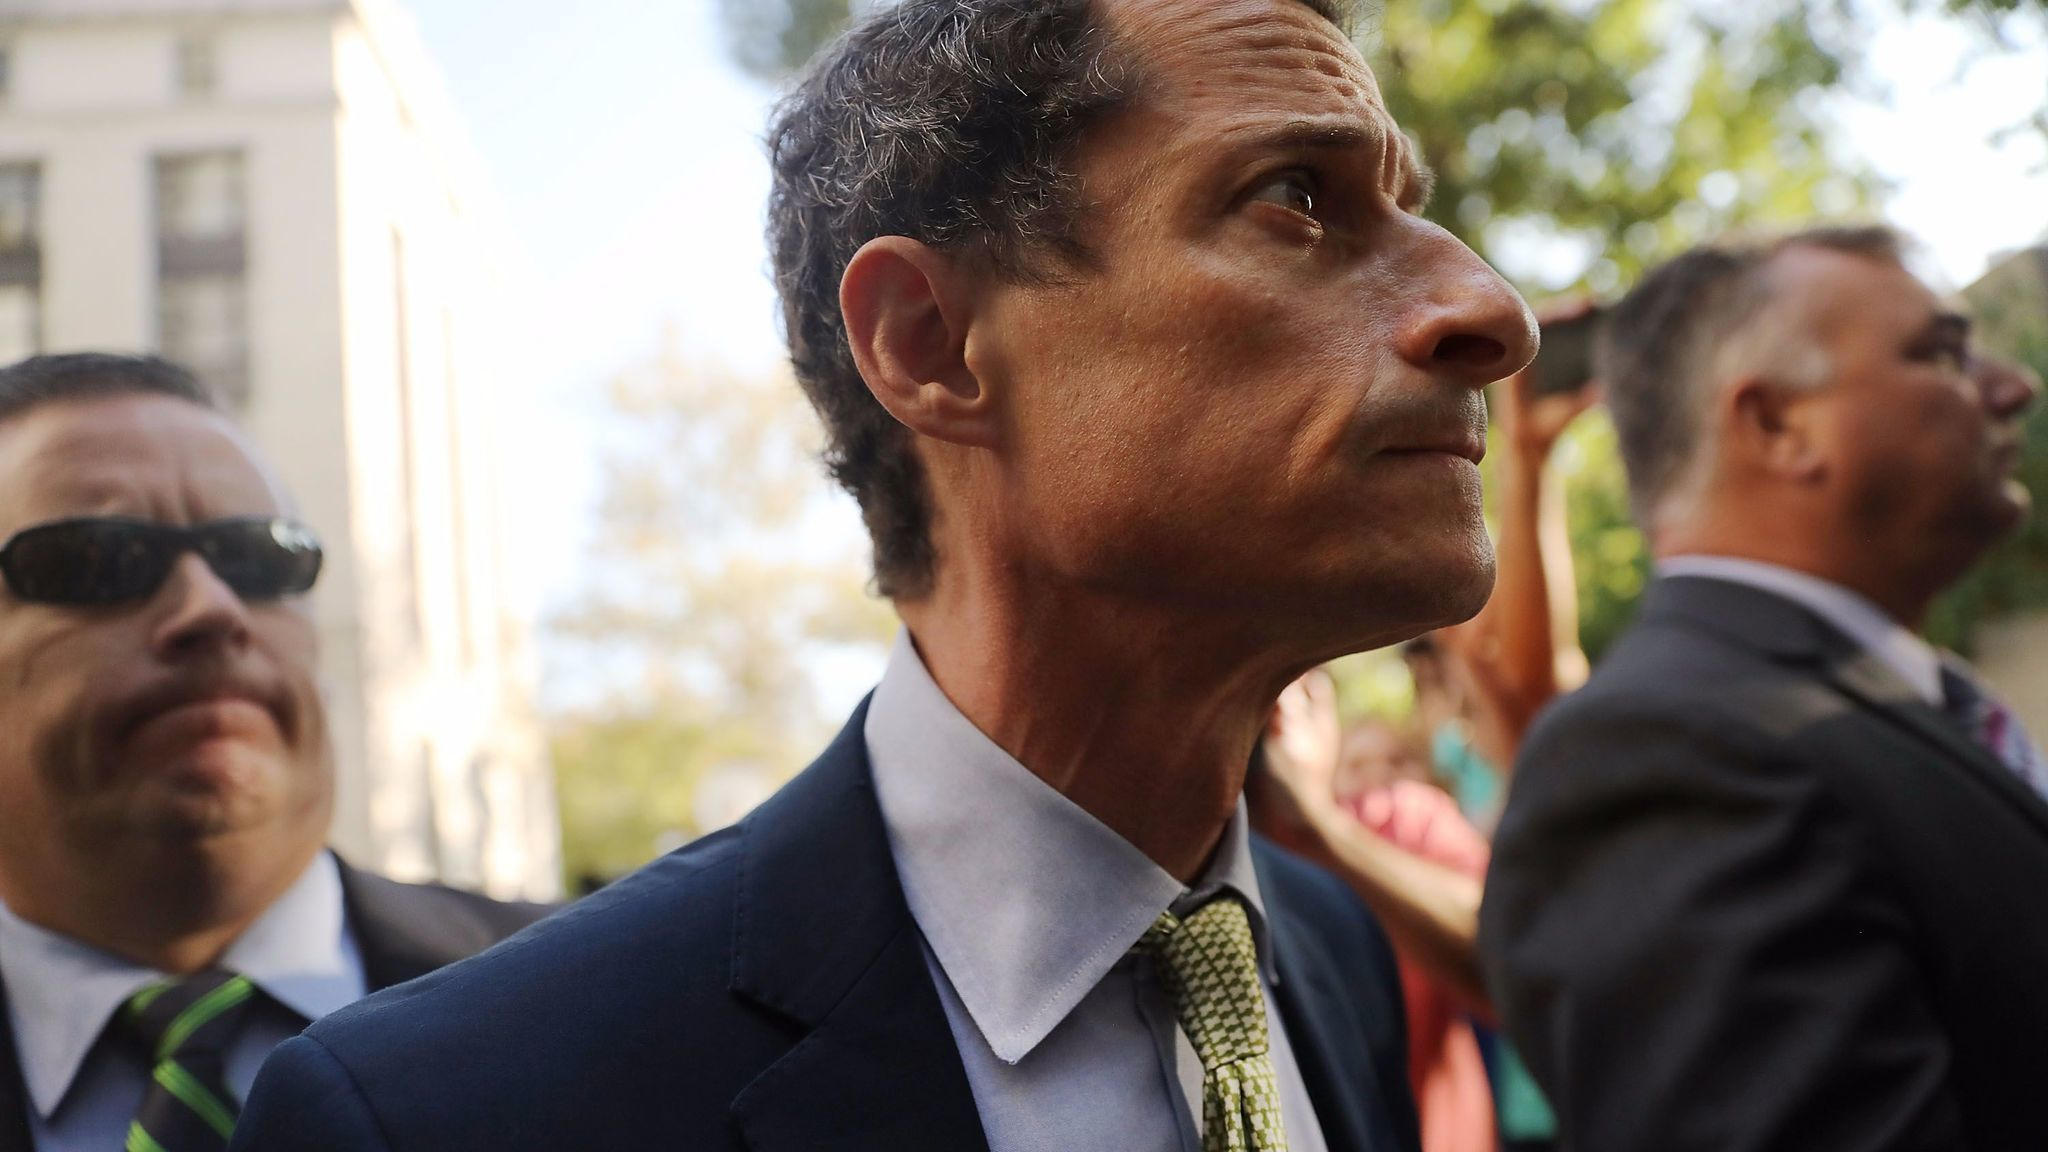 Weiner Tells New York Judge, 'I Have No Excuses,' As He Is Sentenced To 21 Months In Prison In Sexting Case